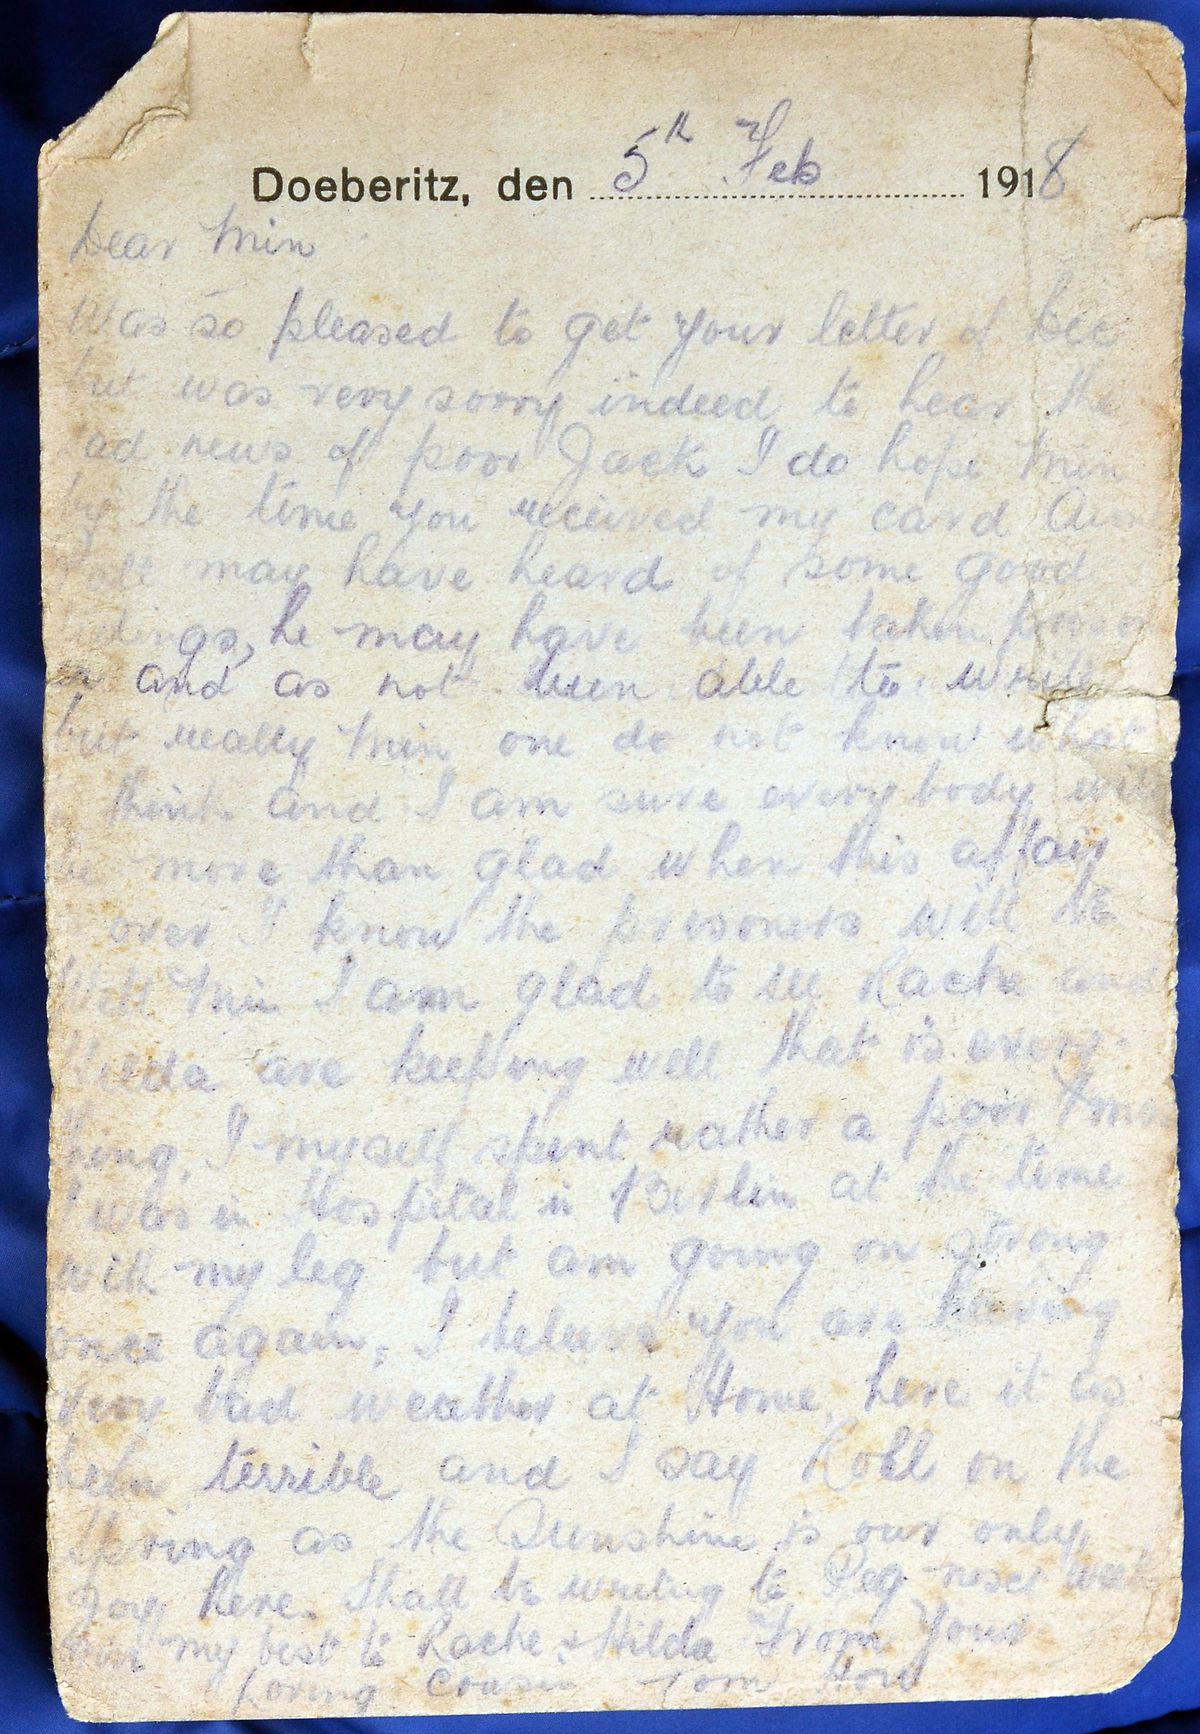 """Tom commiserates in this February 1918 message about the """"sad news of poor Jack."""""""